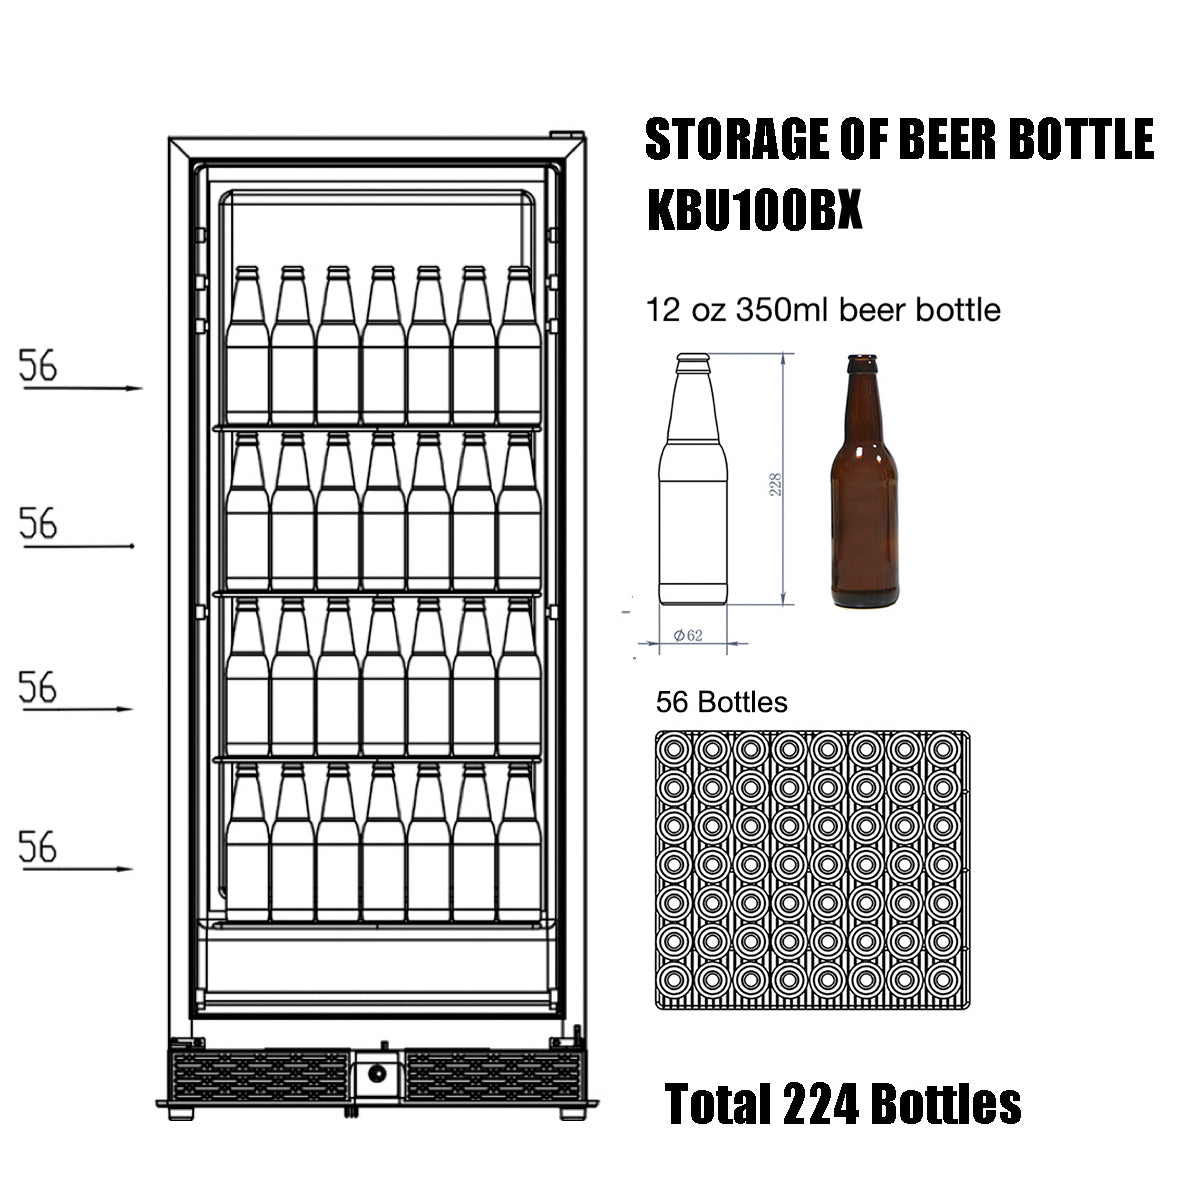 KBU100B Storage of Beer Bottle